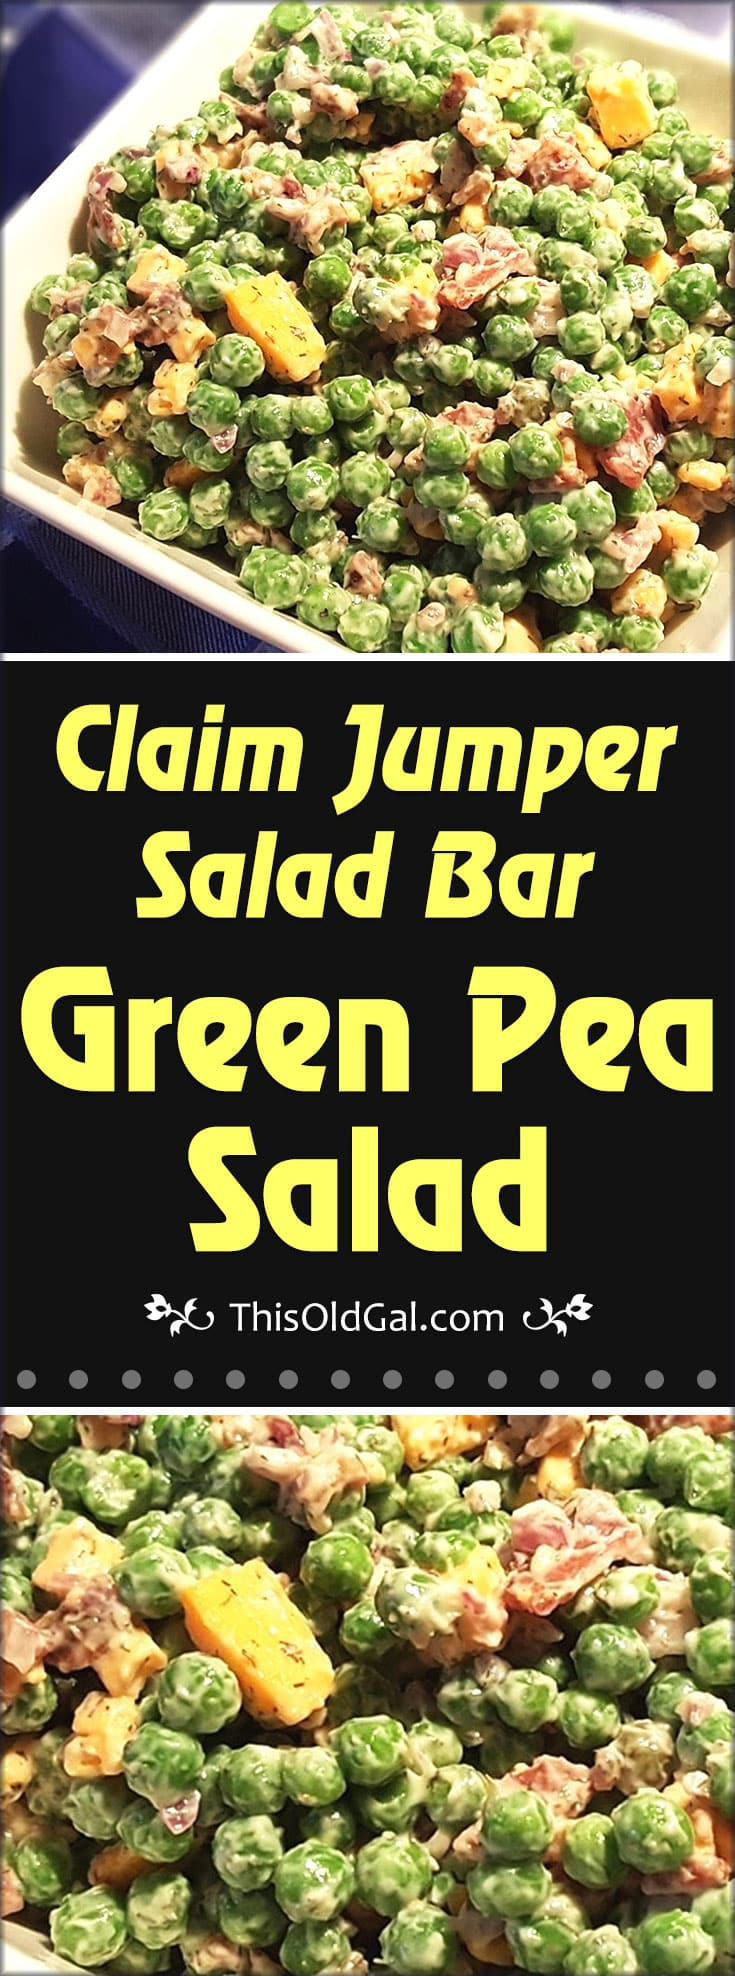 Claim Jumper Salad Bar Green Pea Salad